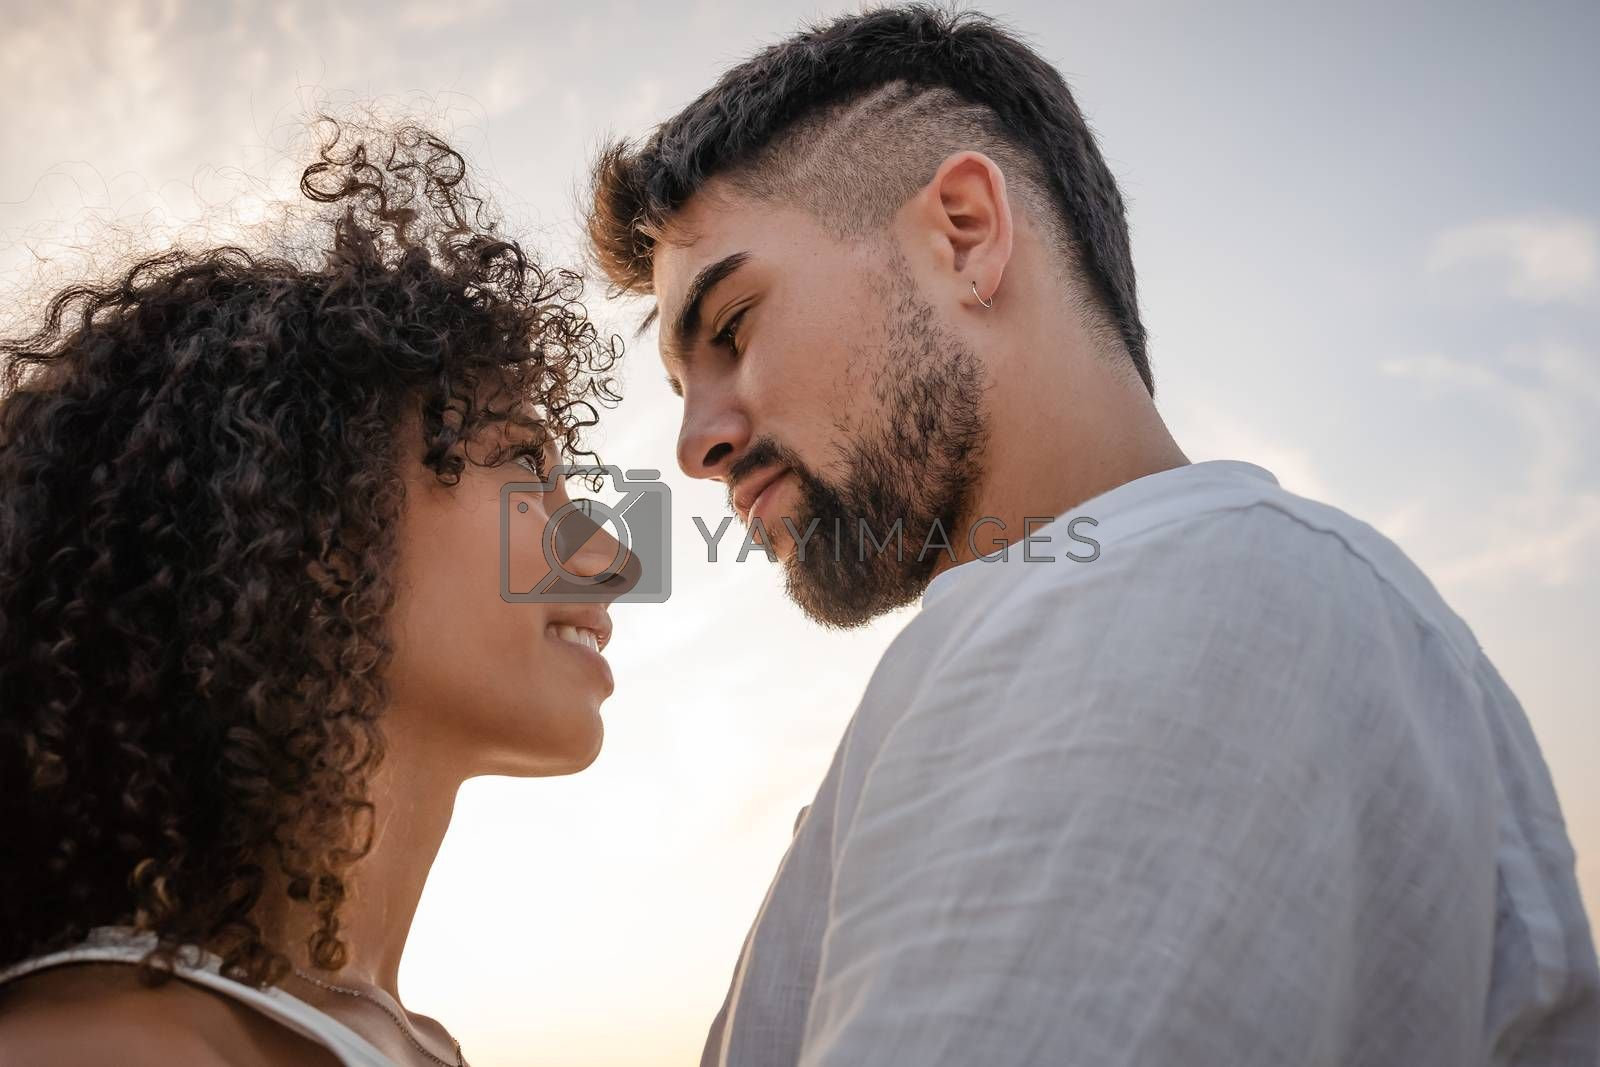 Royalty free image of Side view of two young multiethnic passionate lovers looking in the eyes each other - Macho bearded sexy man looks at his Latin woman with ardor in a romance sunset scene ideal for a book cover by robbyfontanesi